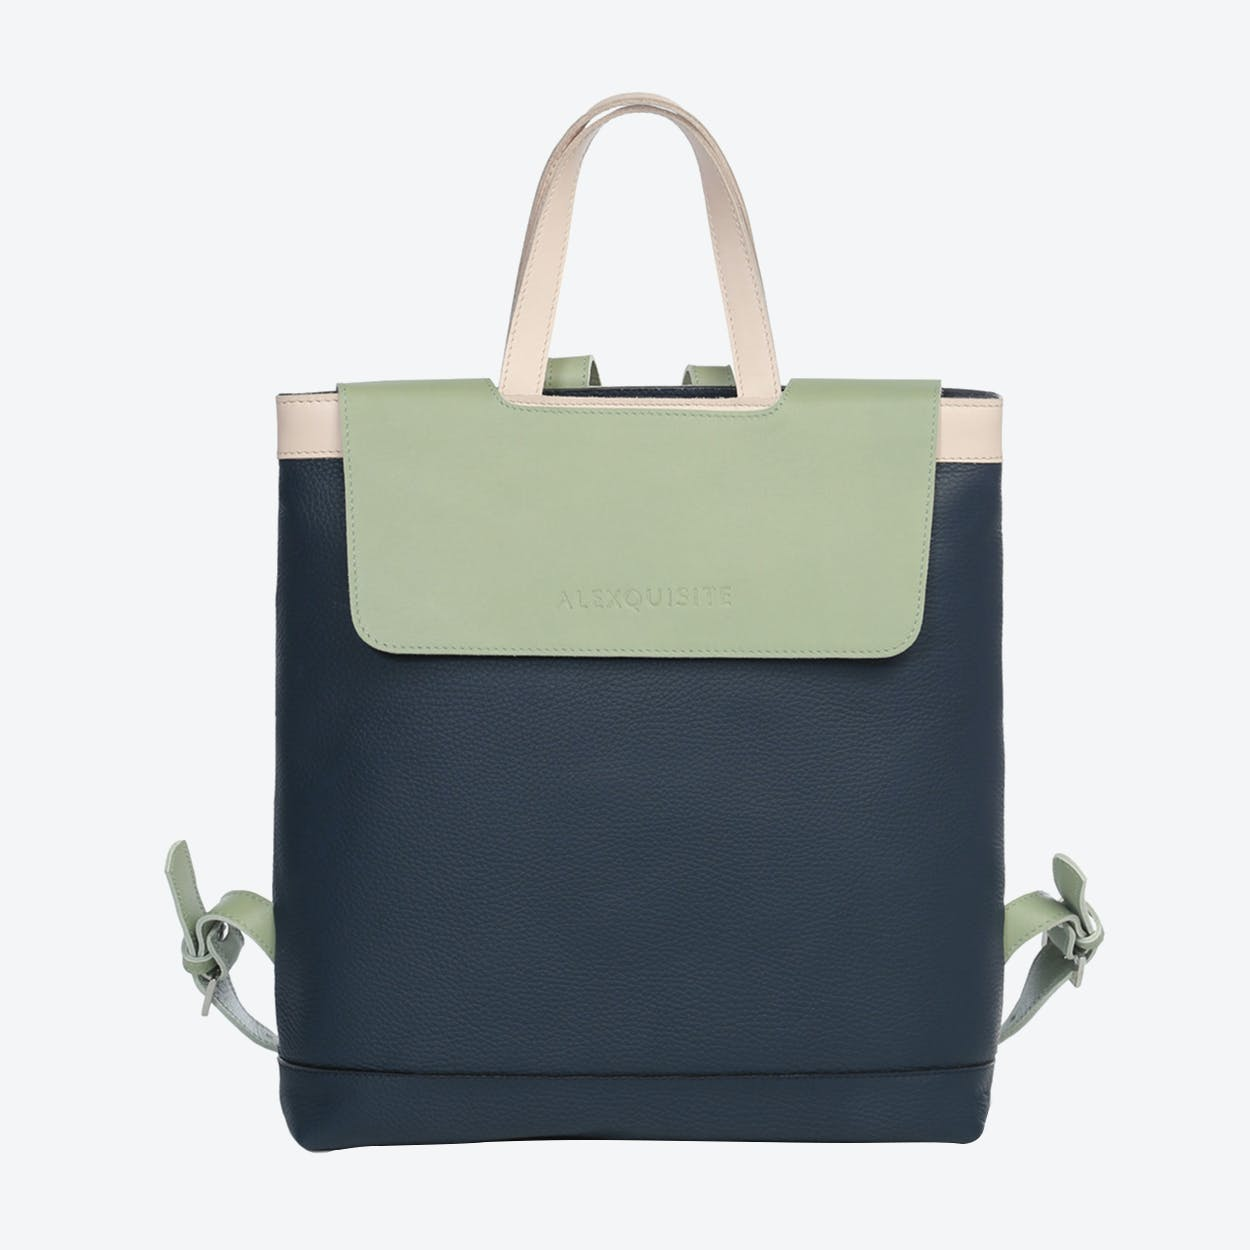 _ONE Backpack in Olive